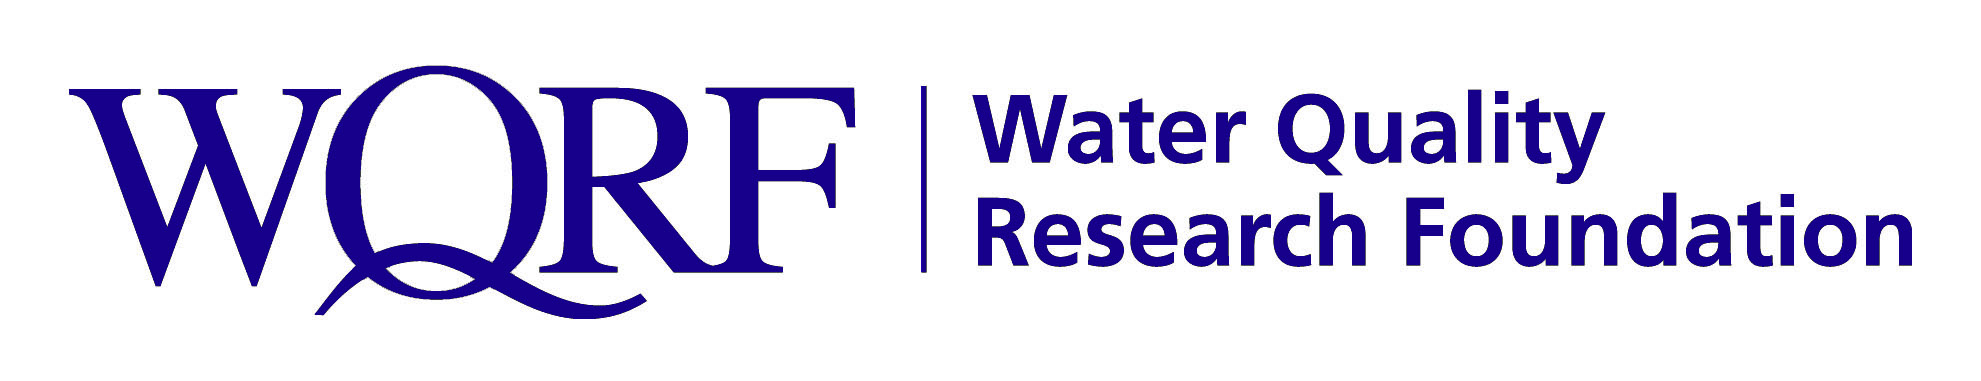 WQRF logo Water quality research foundation